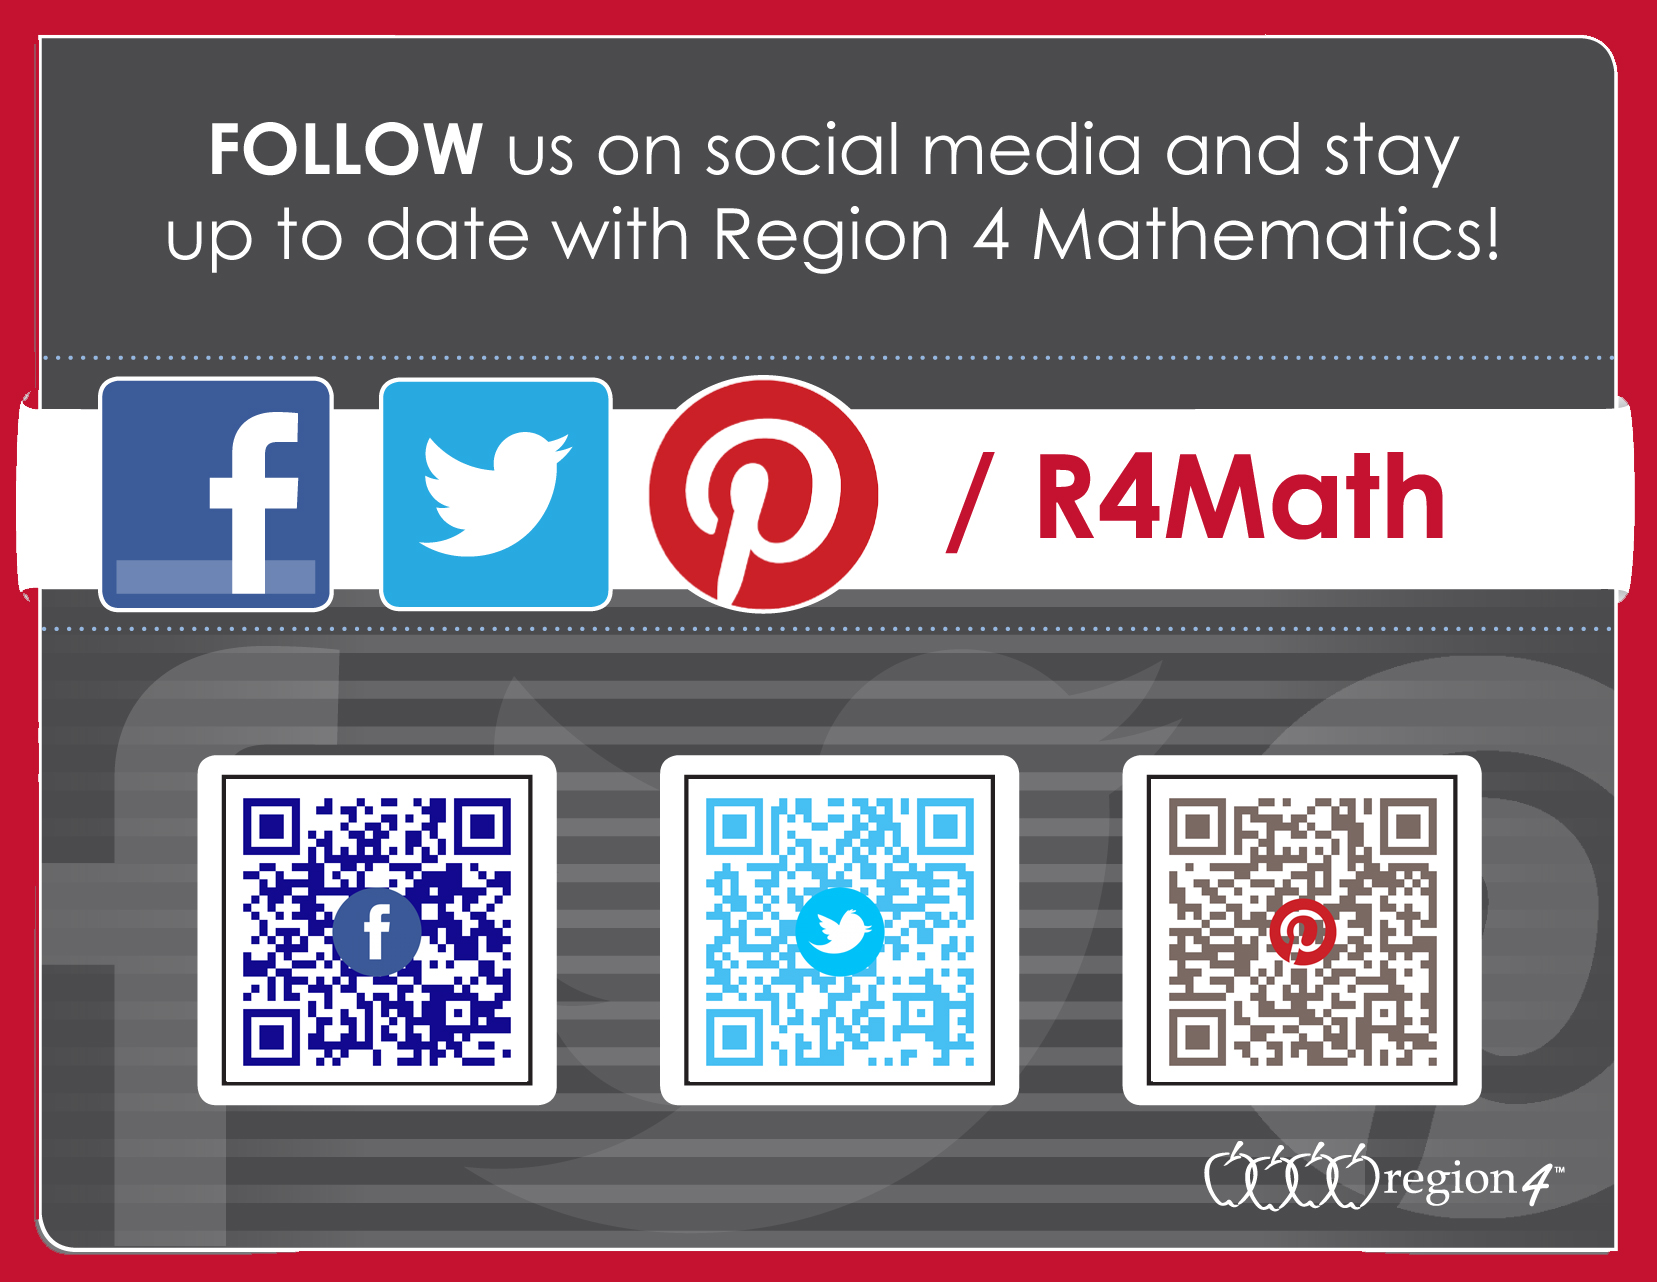 Follow us on social media and stay up to date with Region 4 Mathematics!